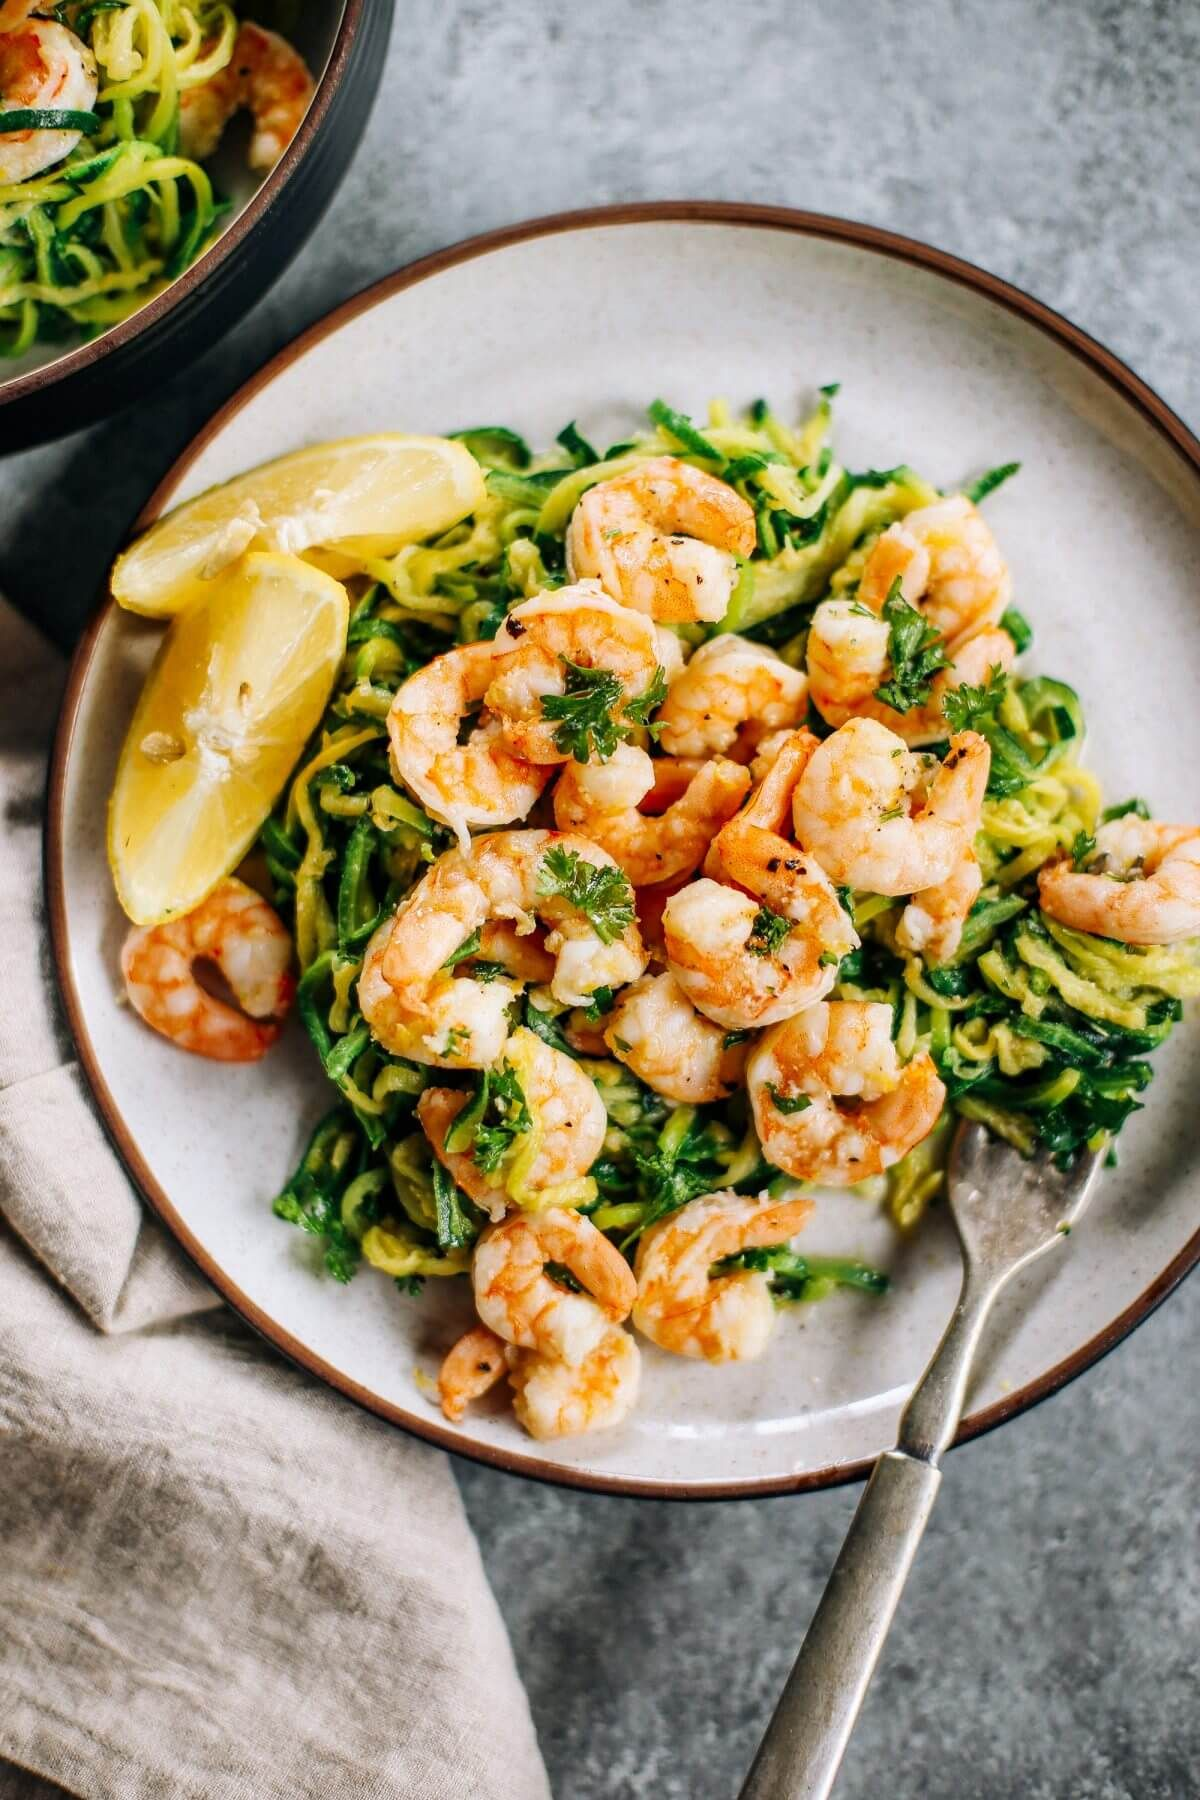 Whole30 Zucchini Noodles With Lemon Garlic Shrimp An Easy And Delicious Weeknight Dinner Who S Ready For Paleo Chicken Dinner Cheap Paleo Meals Paleo Dinner